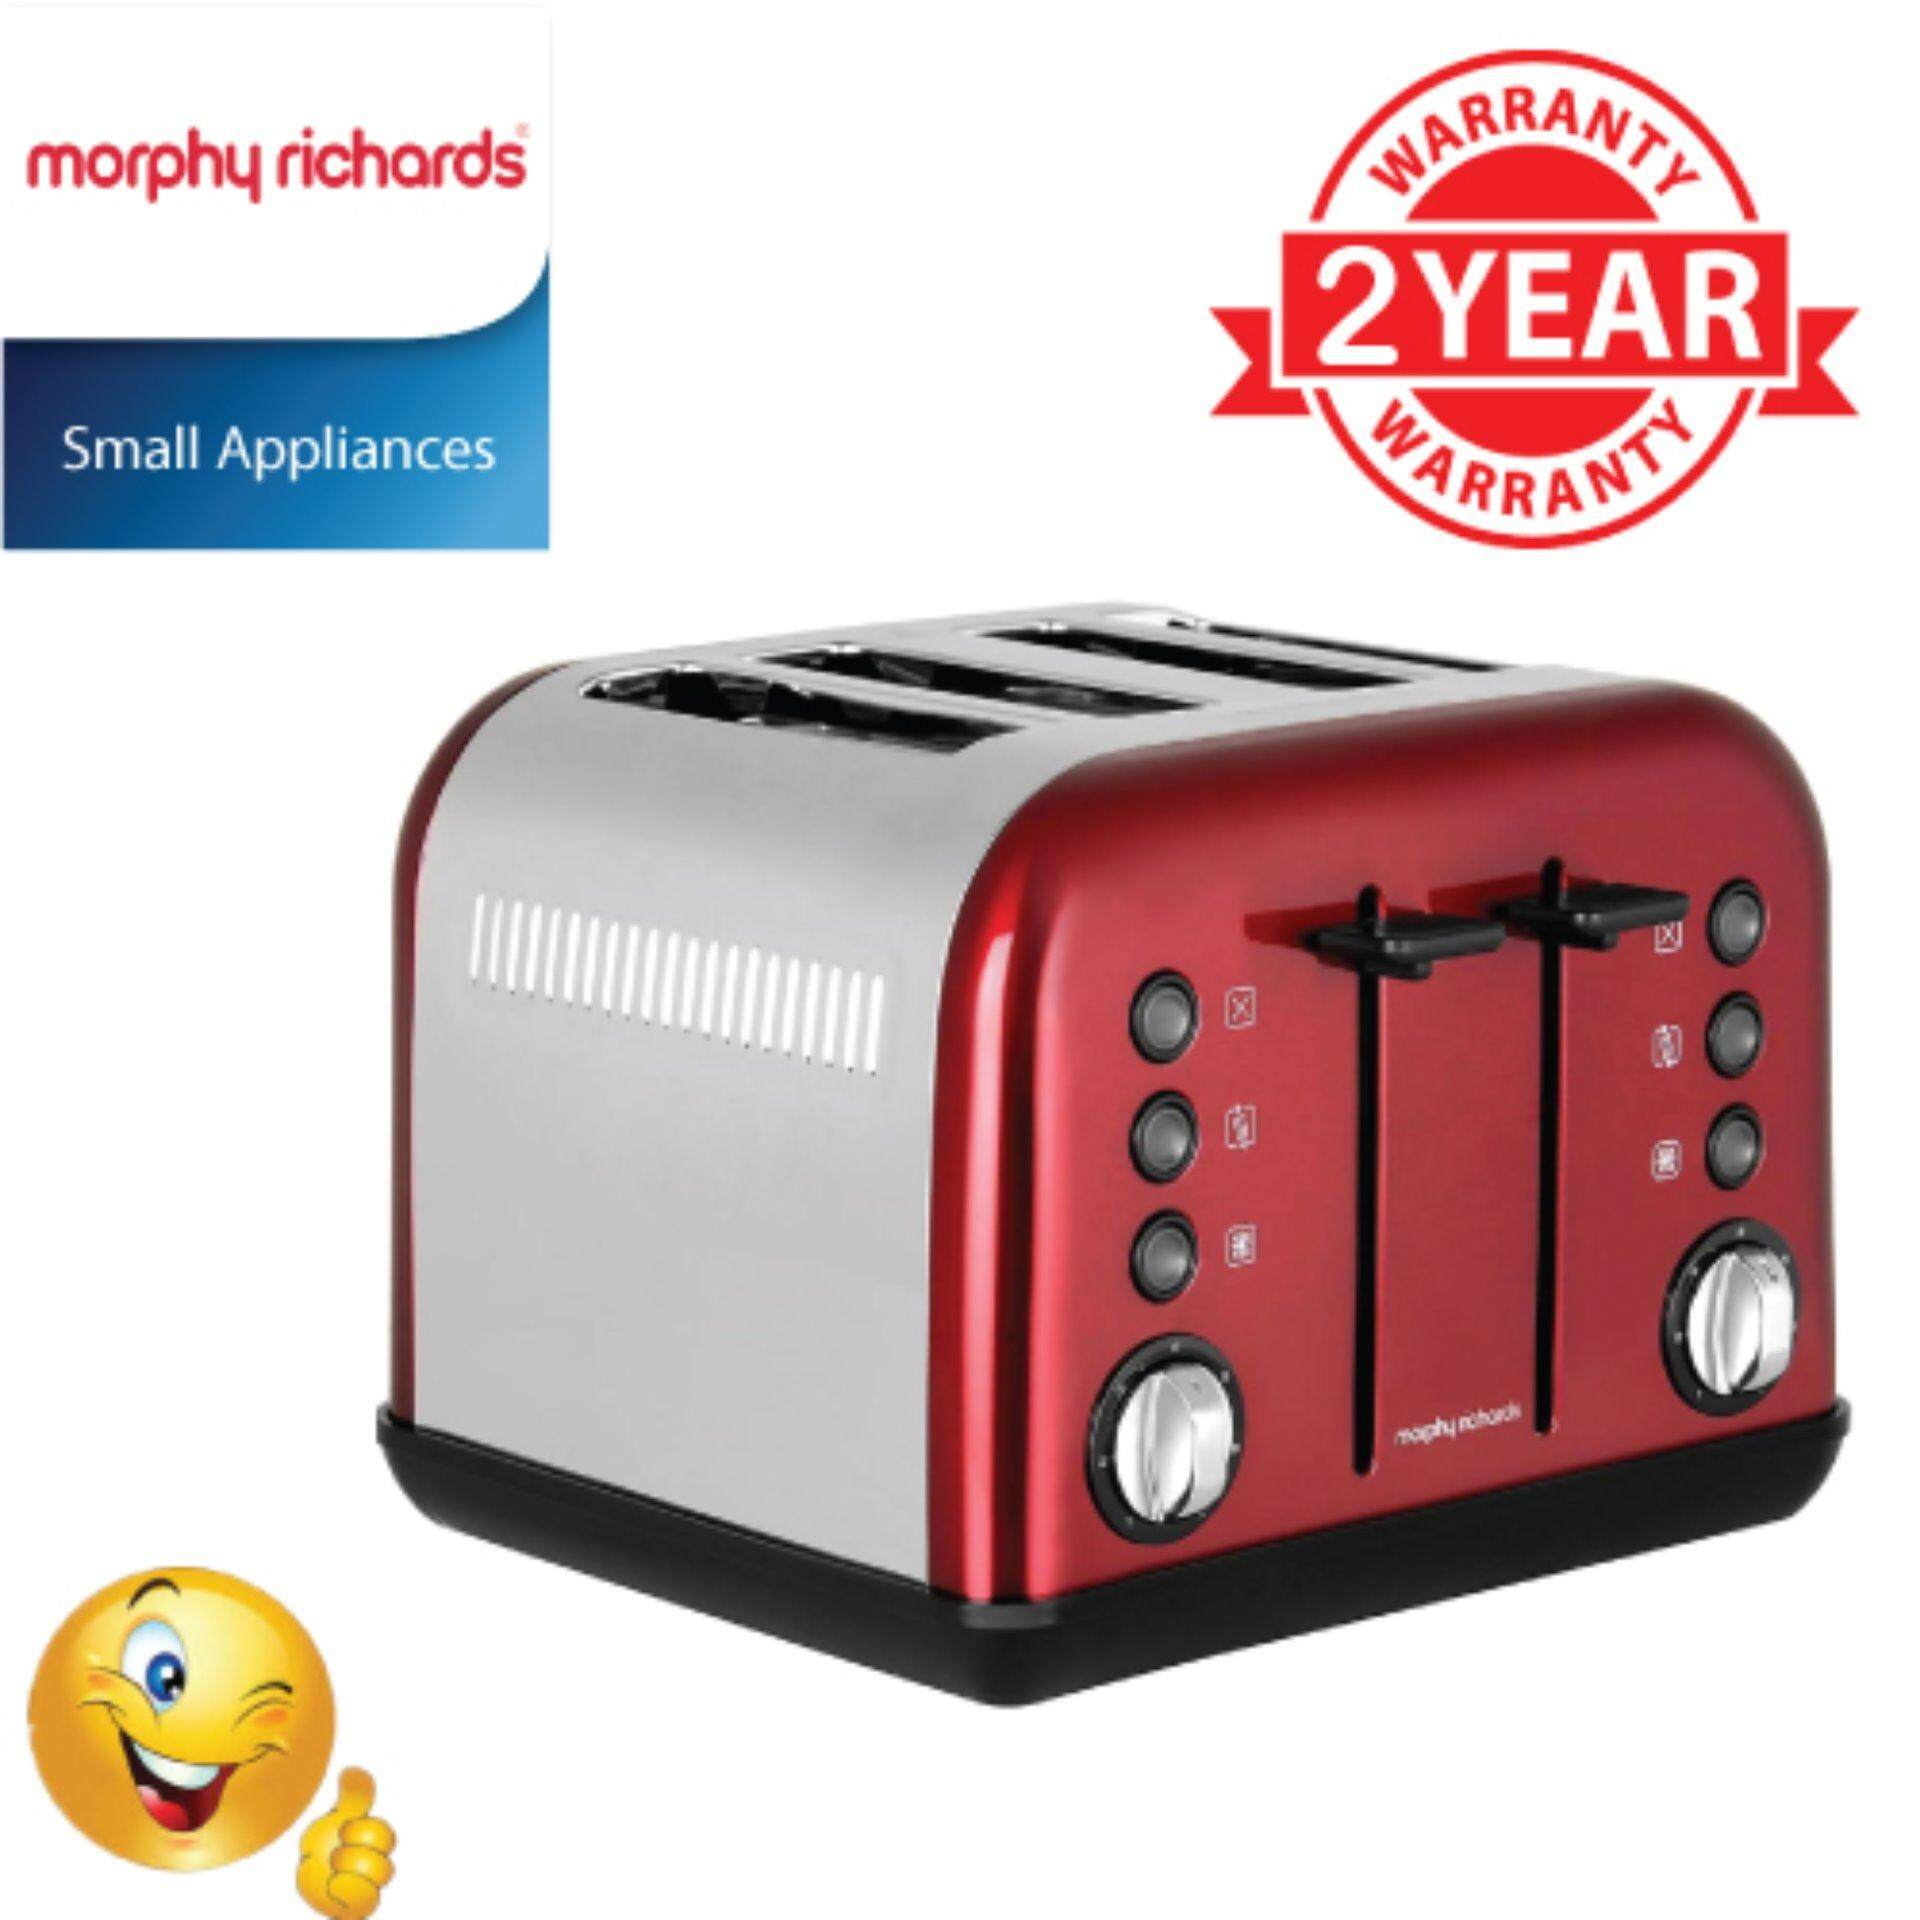 TOASTER MORPHY RICHARD ACCENTS 242030 4 SLICE RED